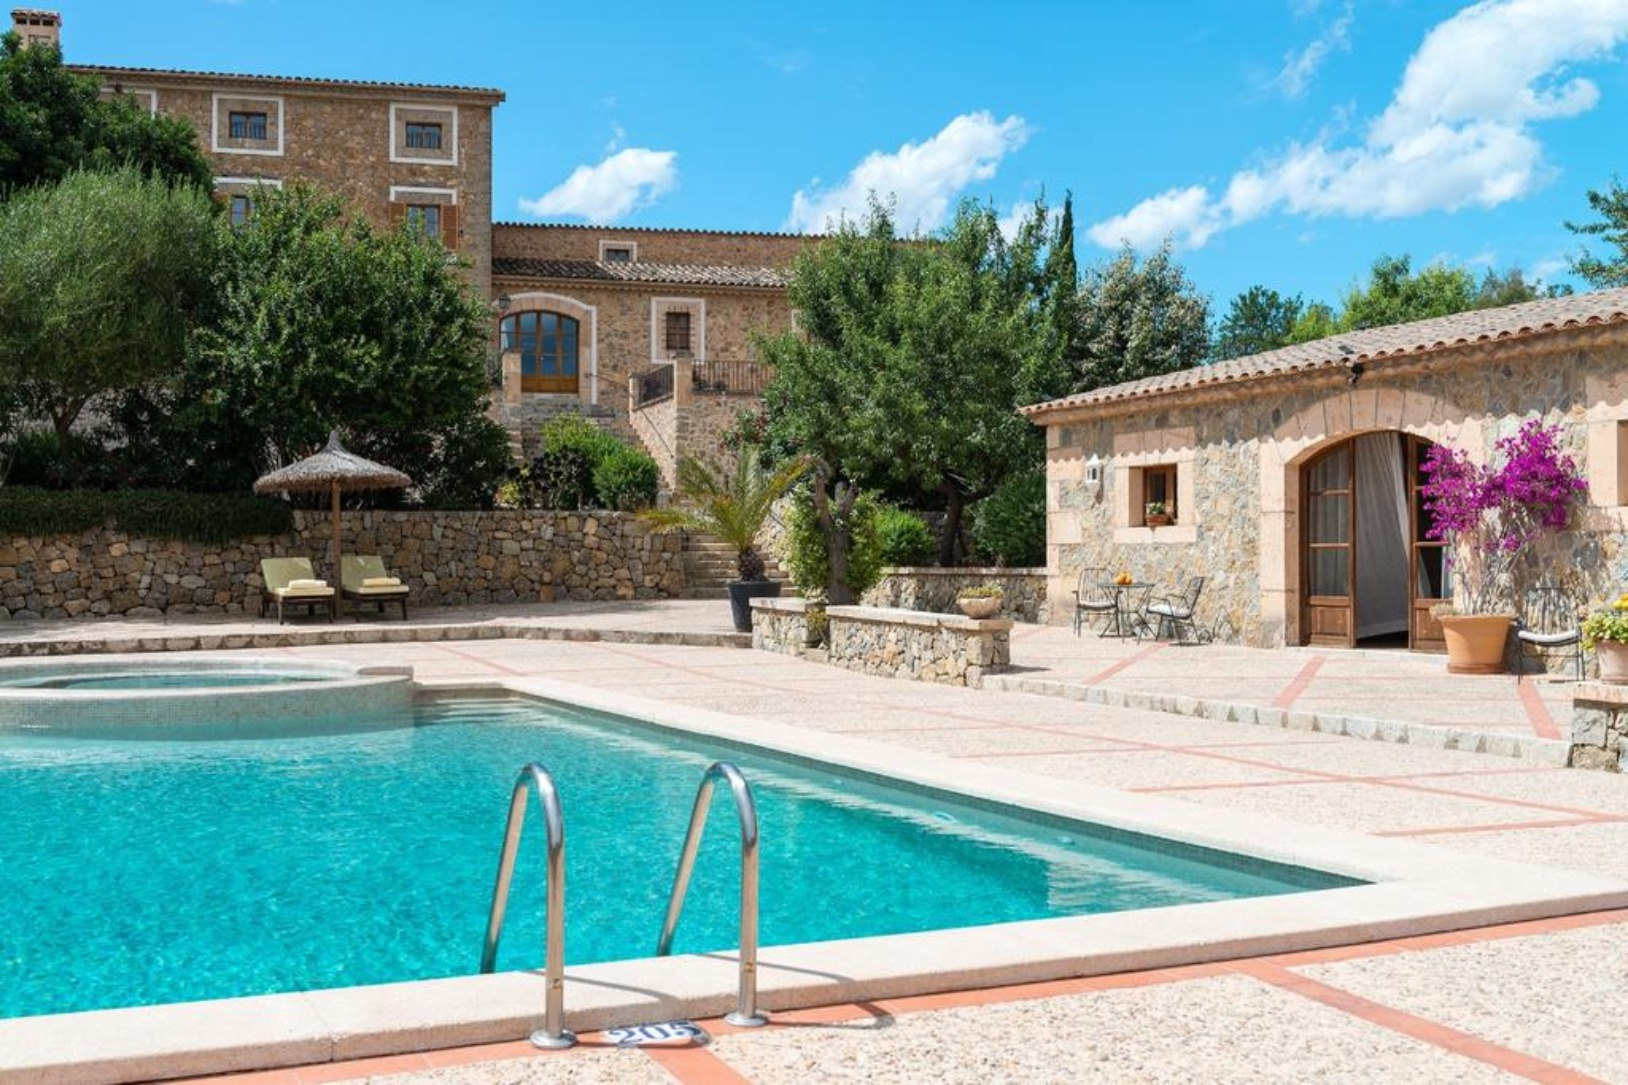 A pool in front of a building at Can Estades.